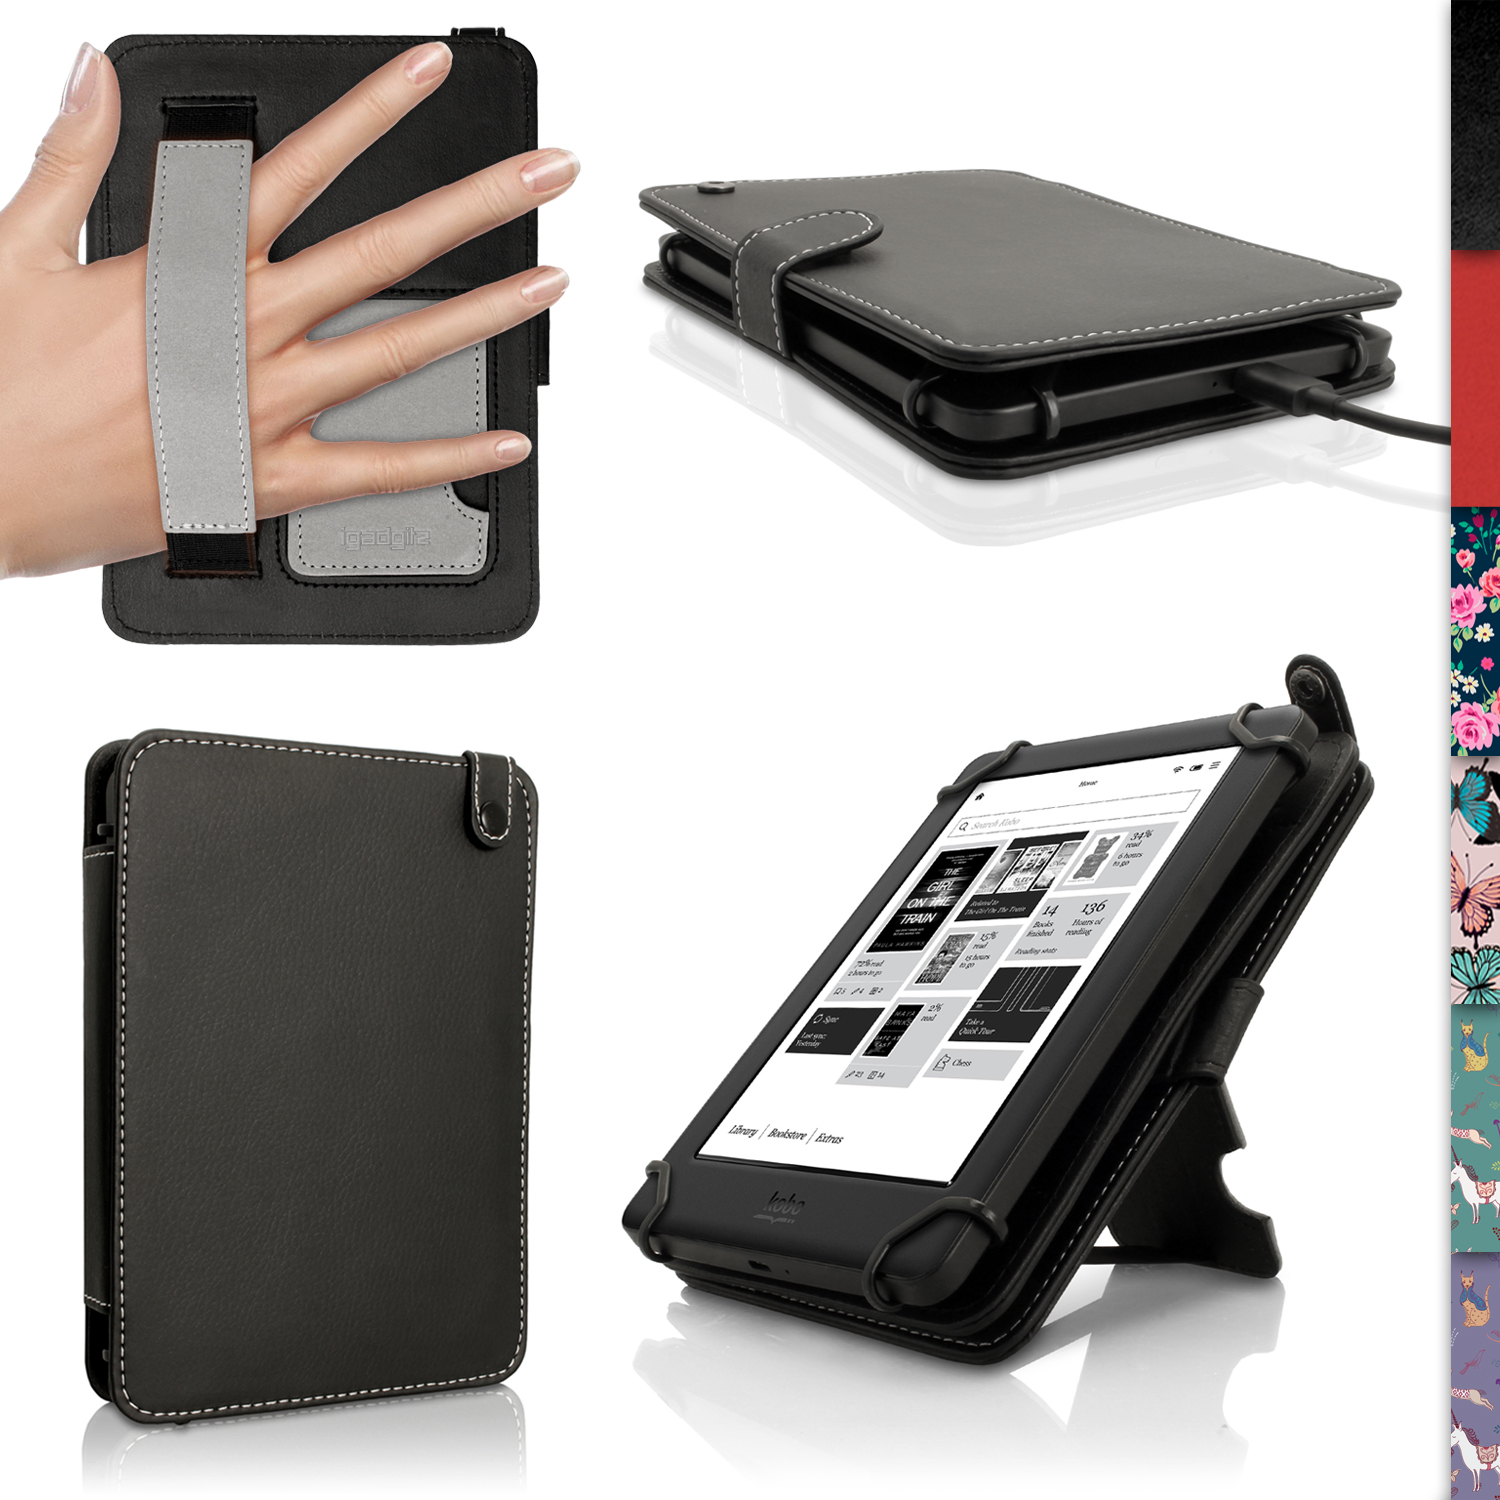 iGadgitz PU Leather Folio Case Cover for Kobo Glo HD 2015, Kobo Touch 2 & Kobo Aura with Hand Strap & Viewing Stand